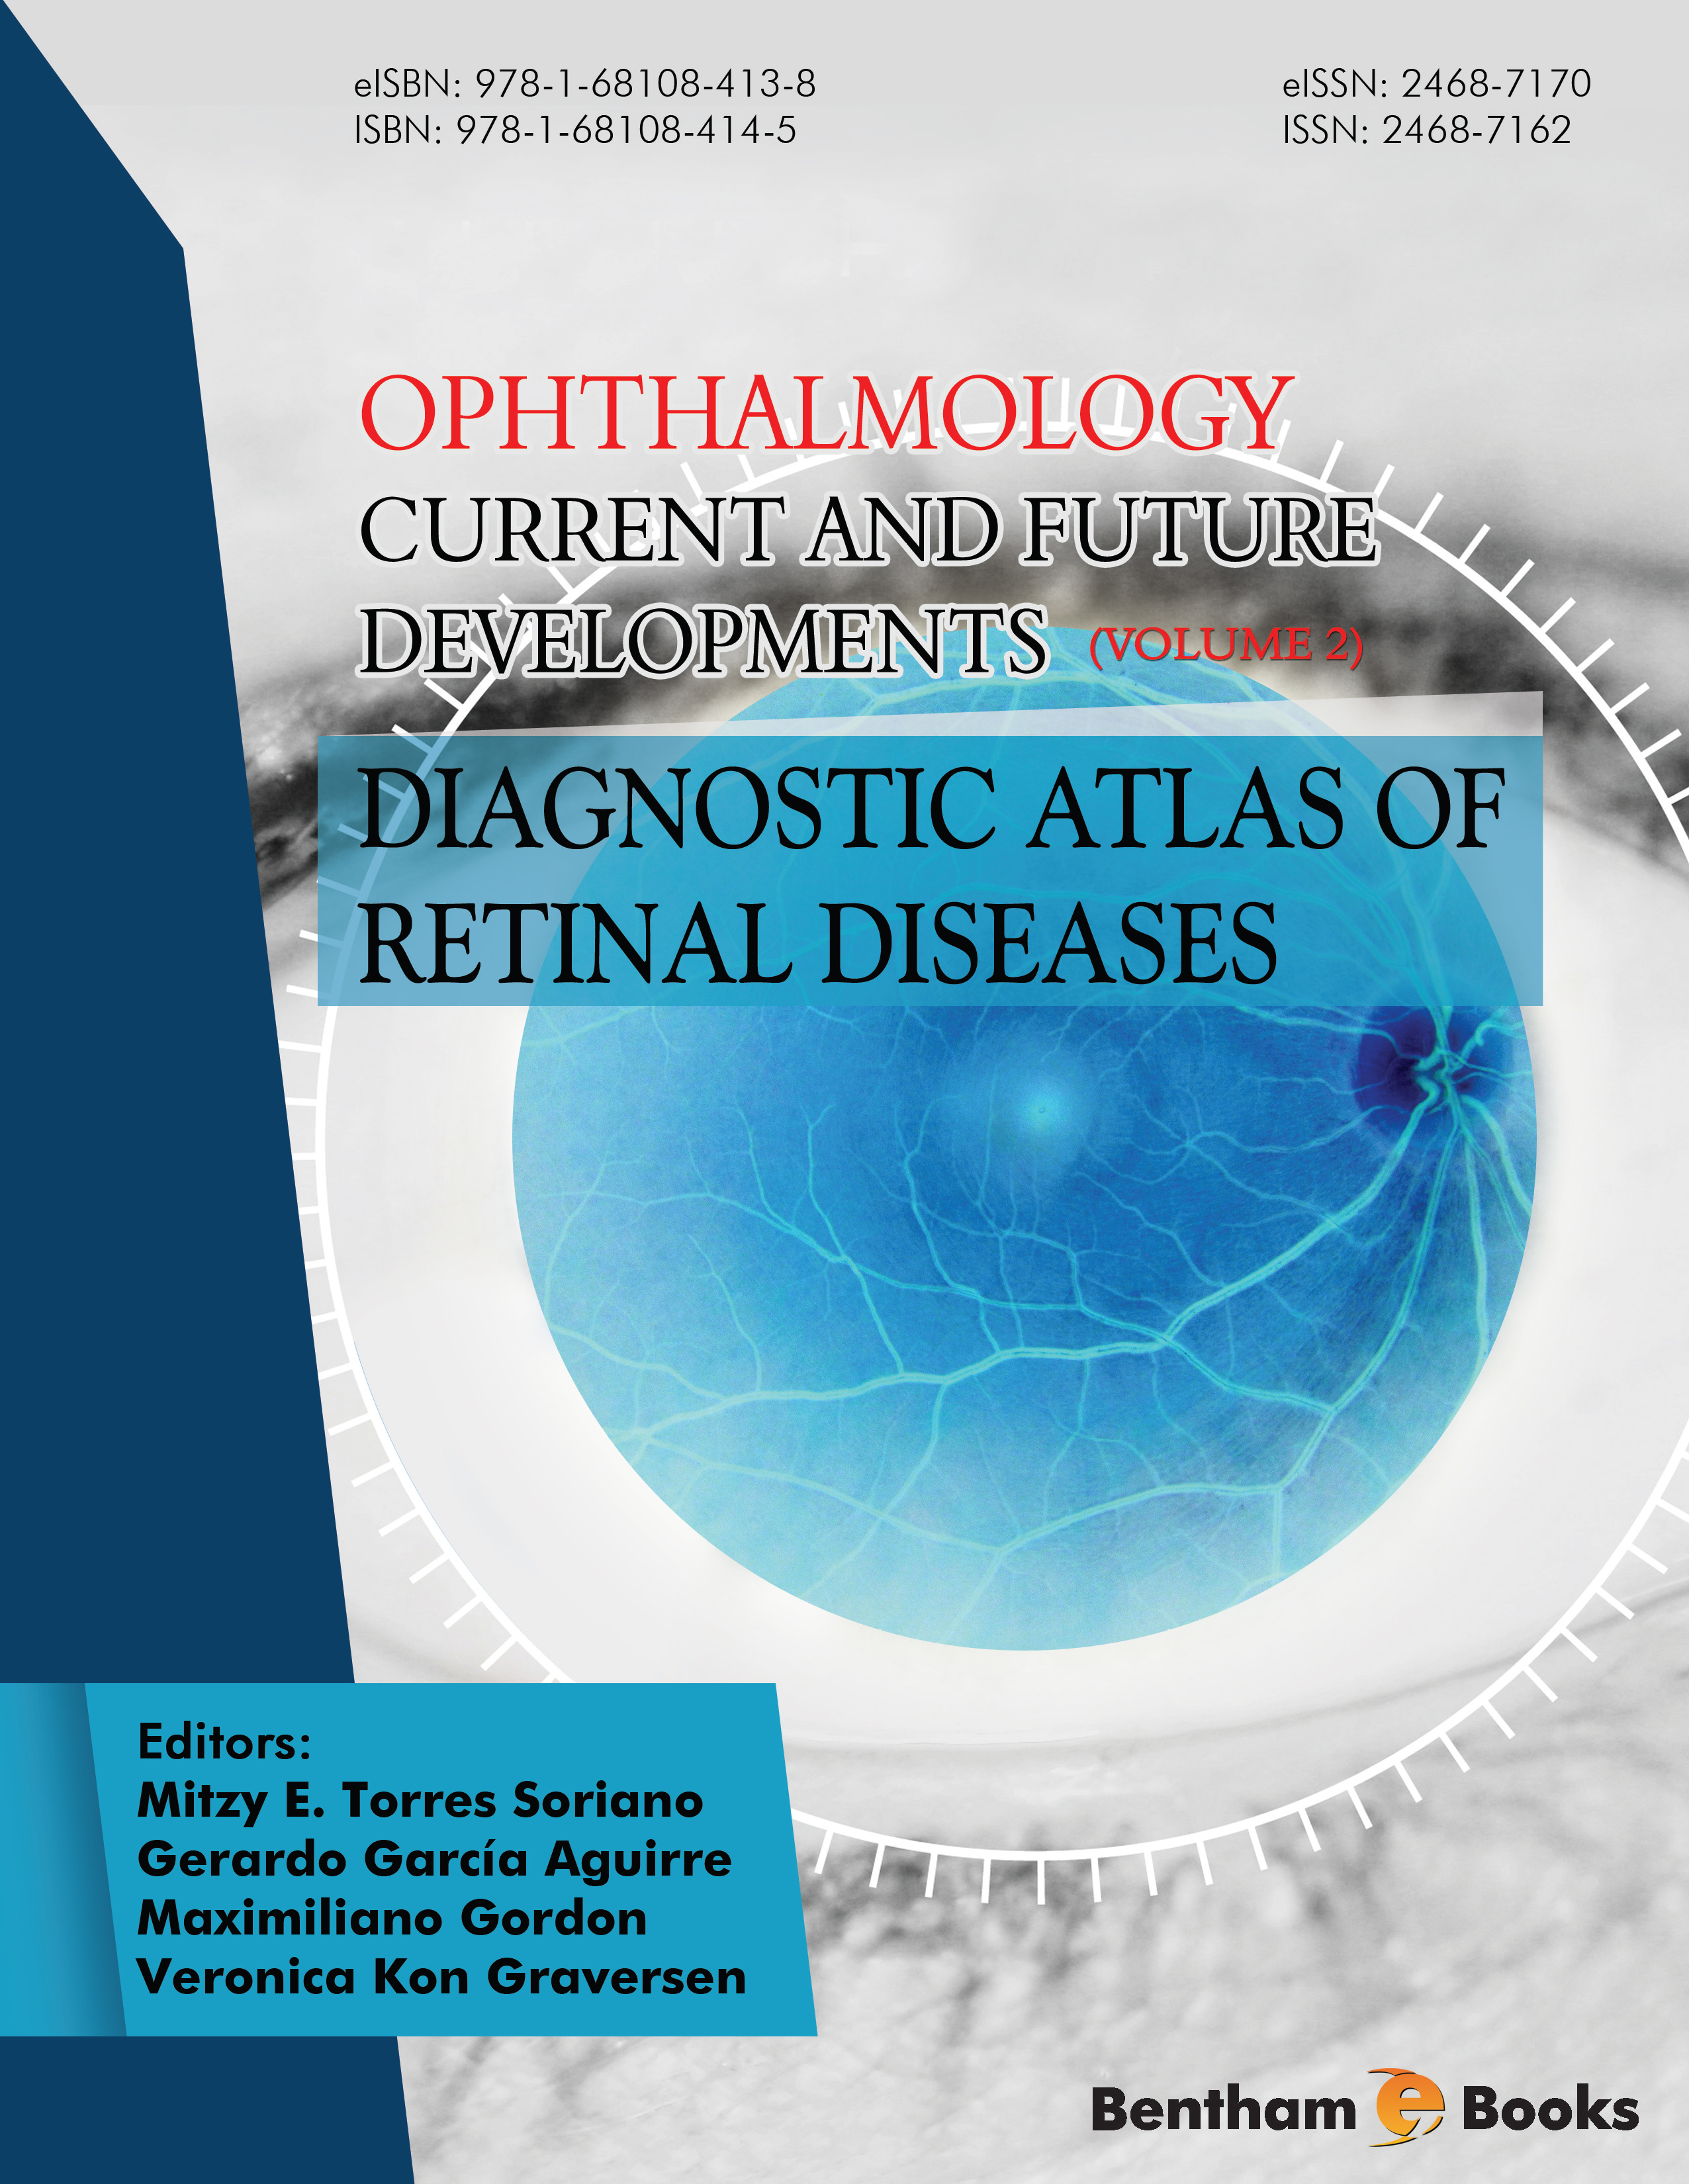 Diagnostic Atlas of Retinal Diseases